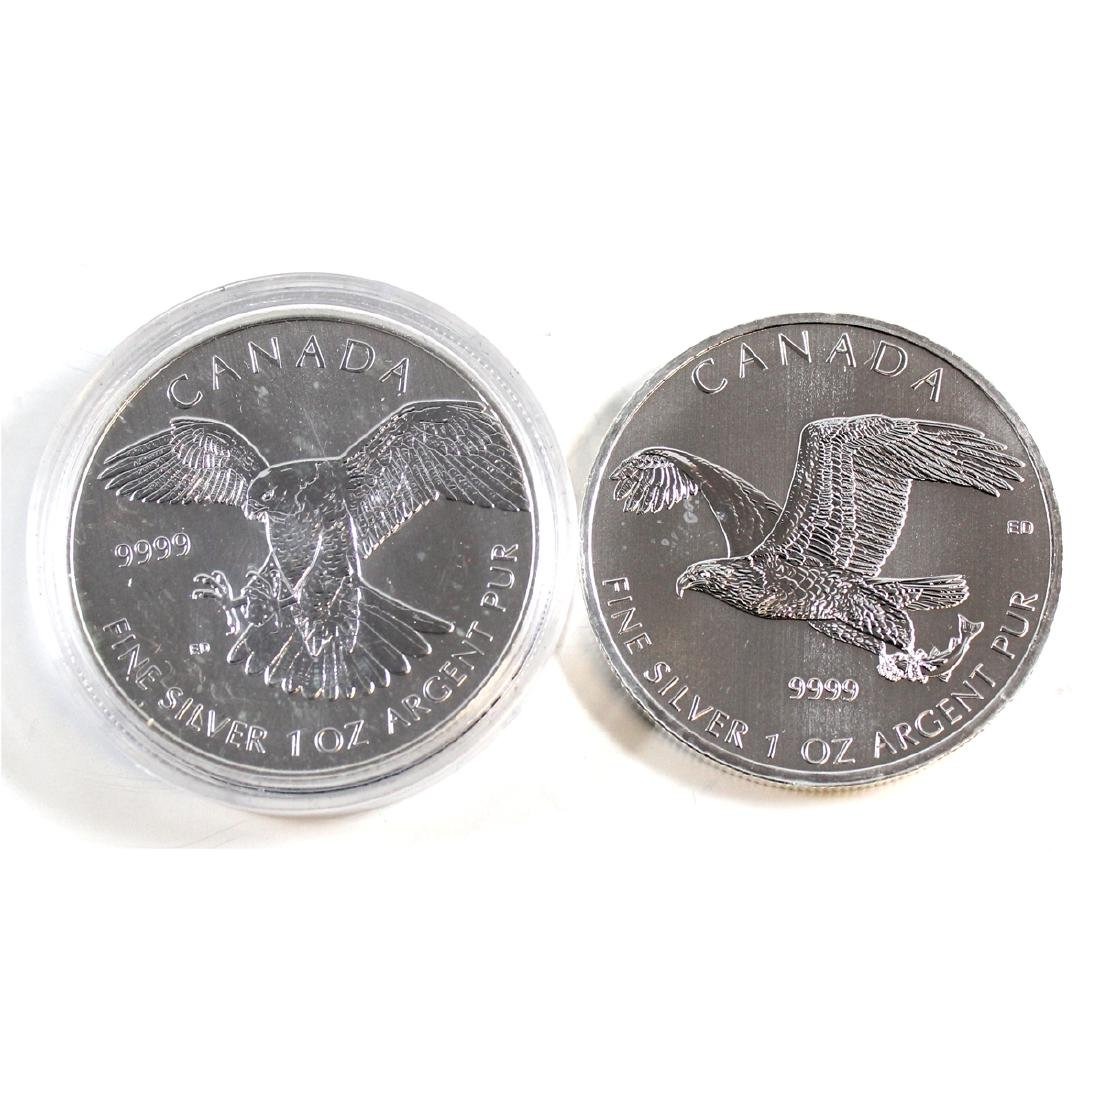 2014 Bald Eagle & 2014 Peregrine Falcon Canada $5 1oz